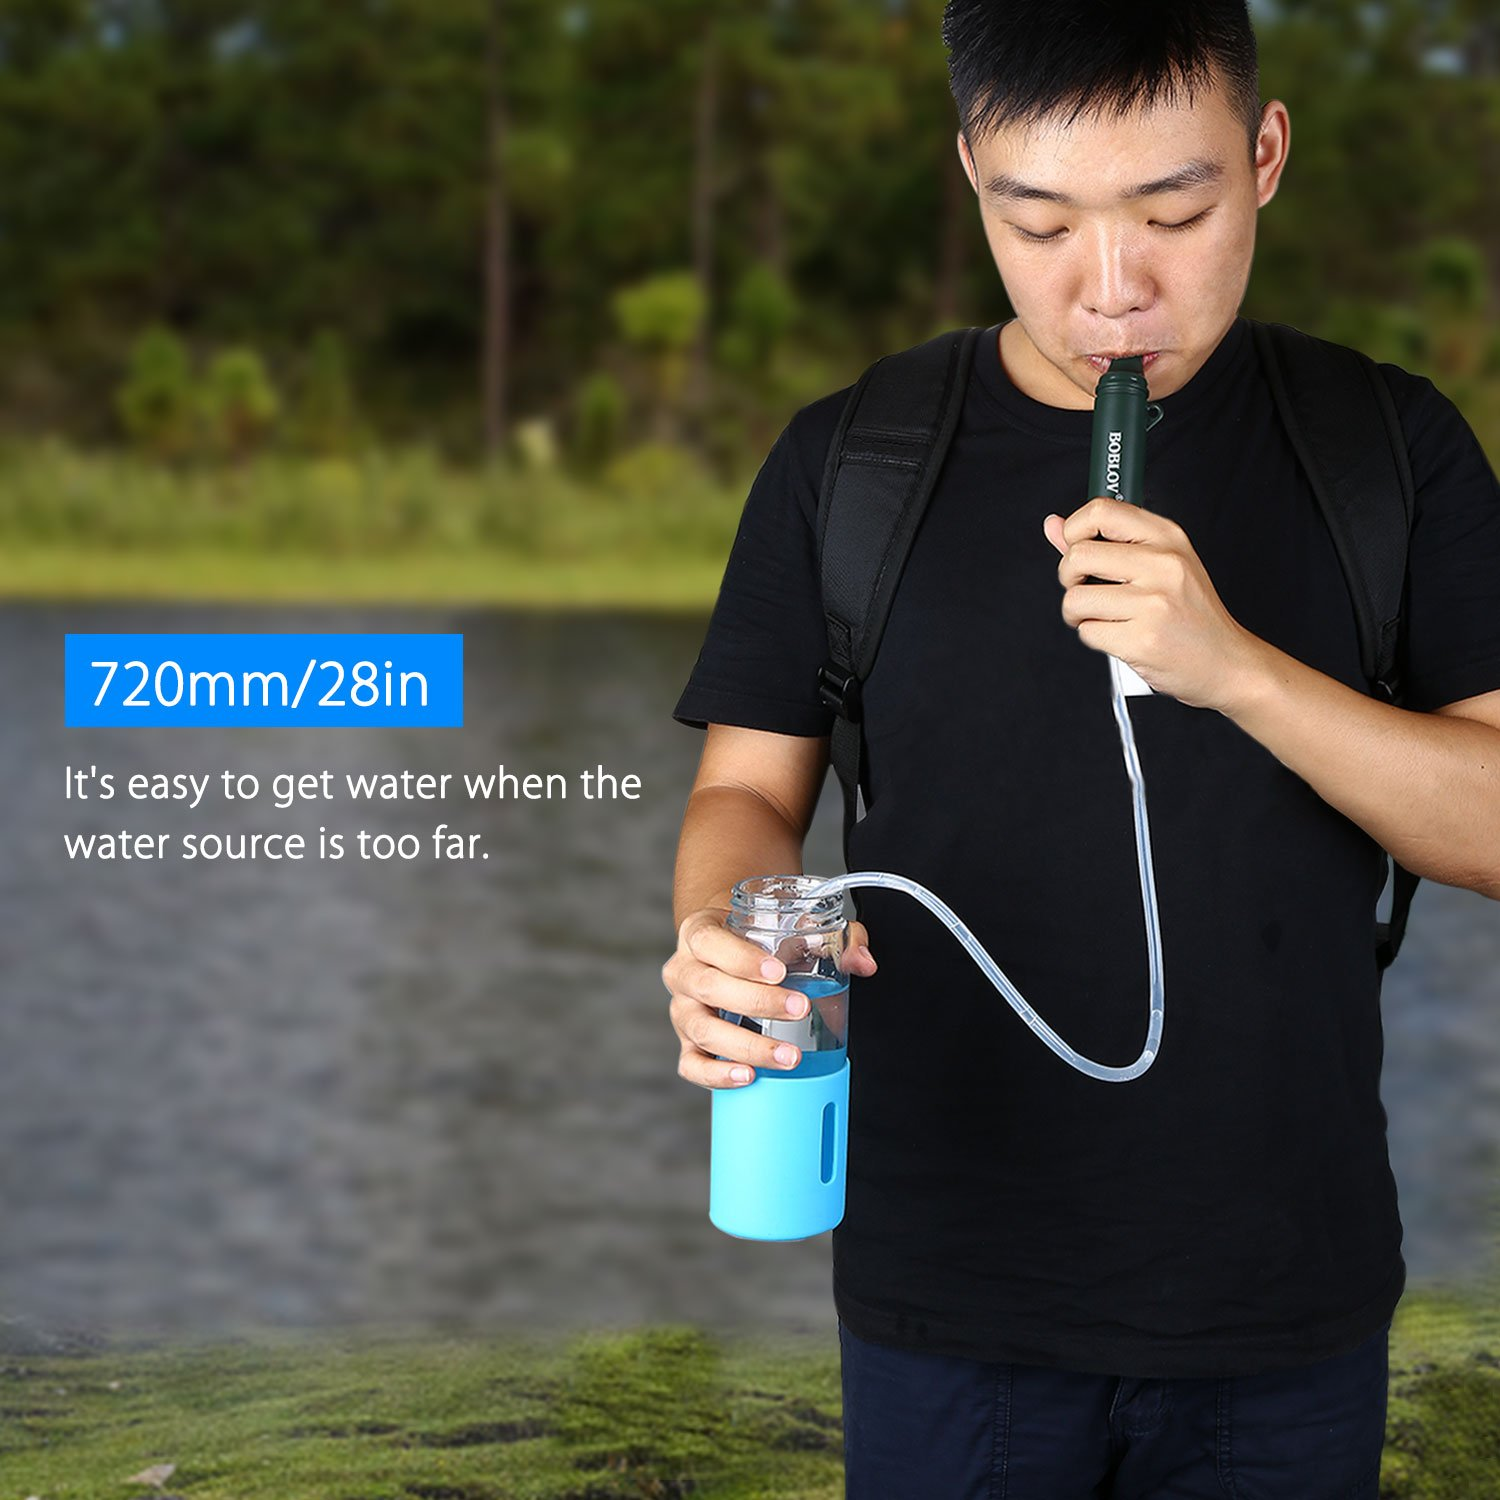 Personal Water Filter Straw Portable Purifier for Hiking, Camping, Travel, and Emergency Preparedness 1500L/1year (Army Green)